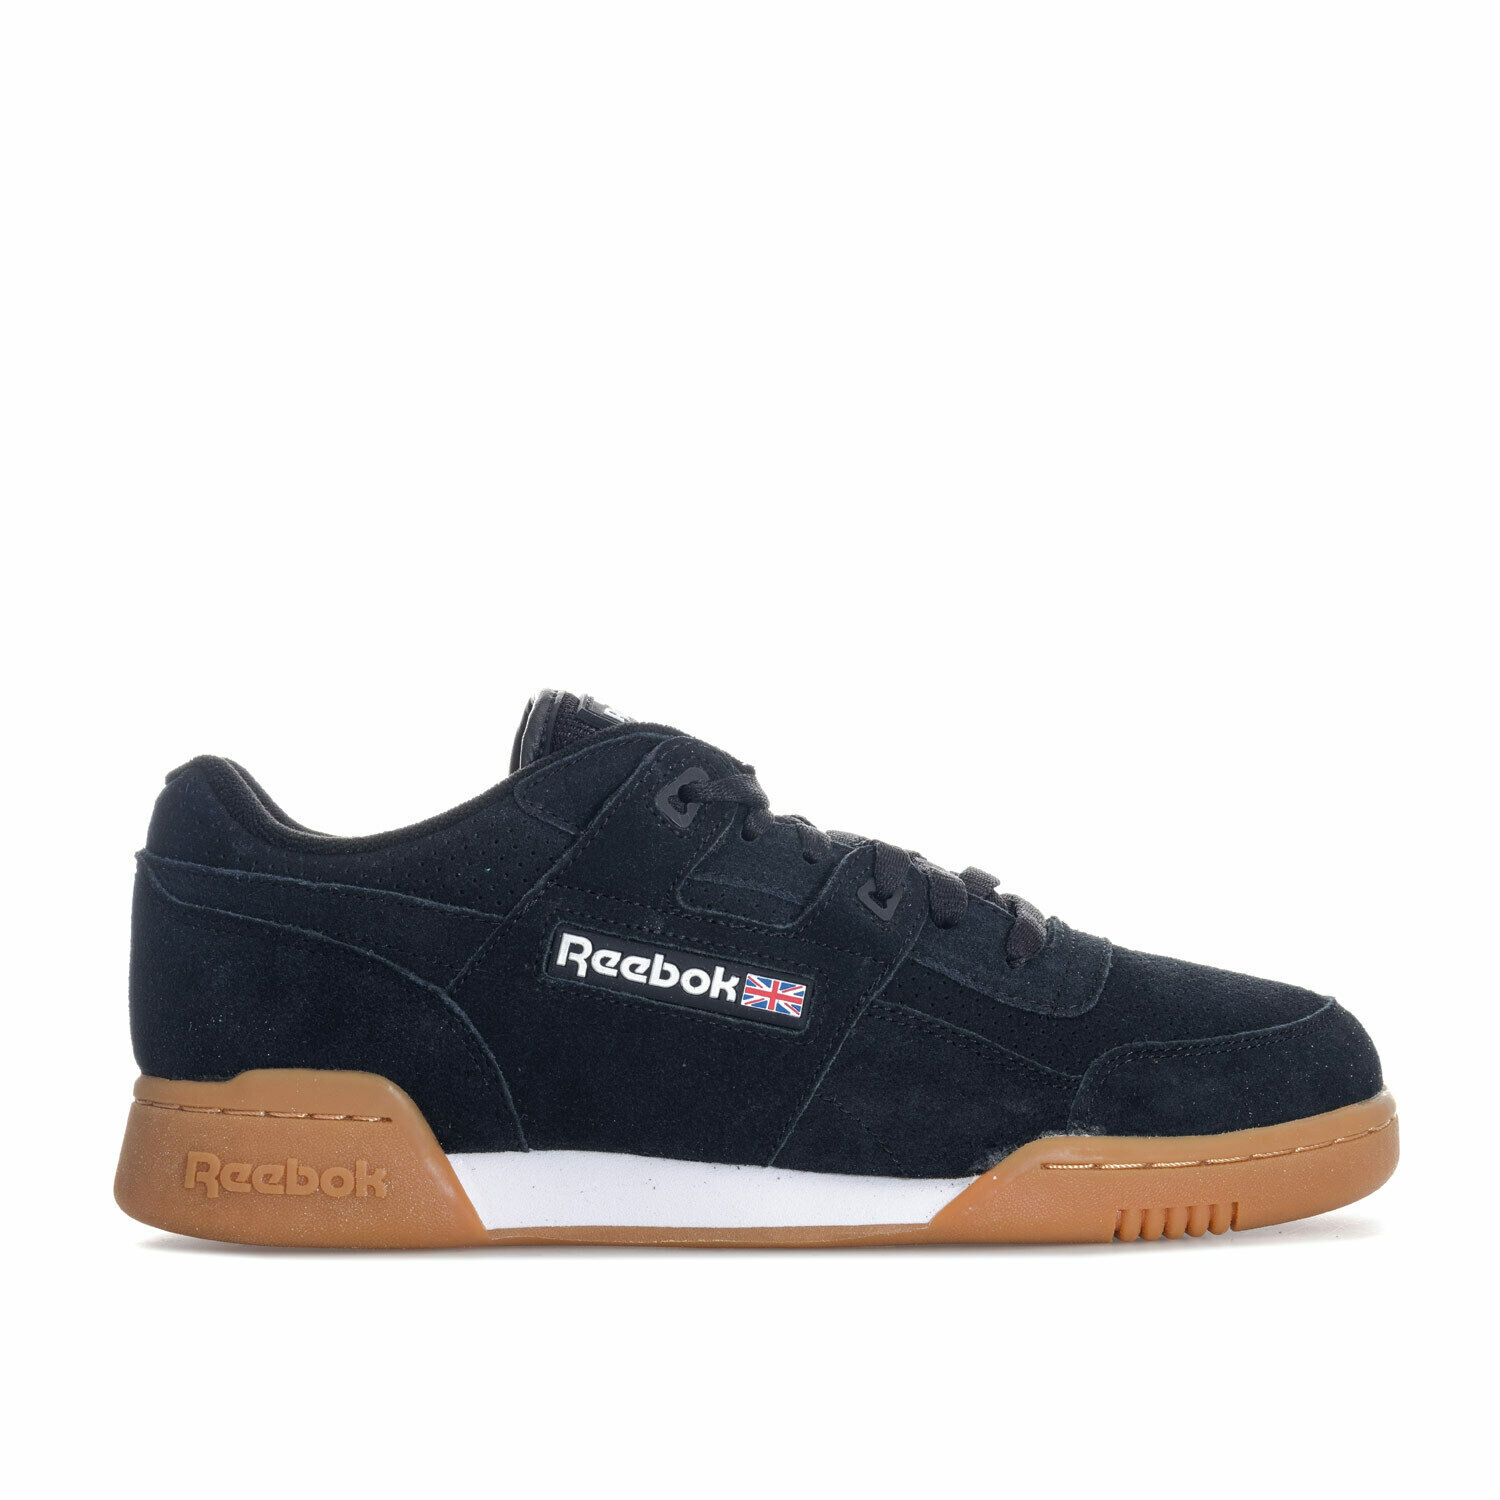 Reebok Workout Plus Trainers Black Gum Earth Trainers Shoes UK 9